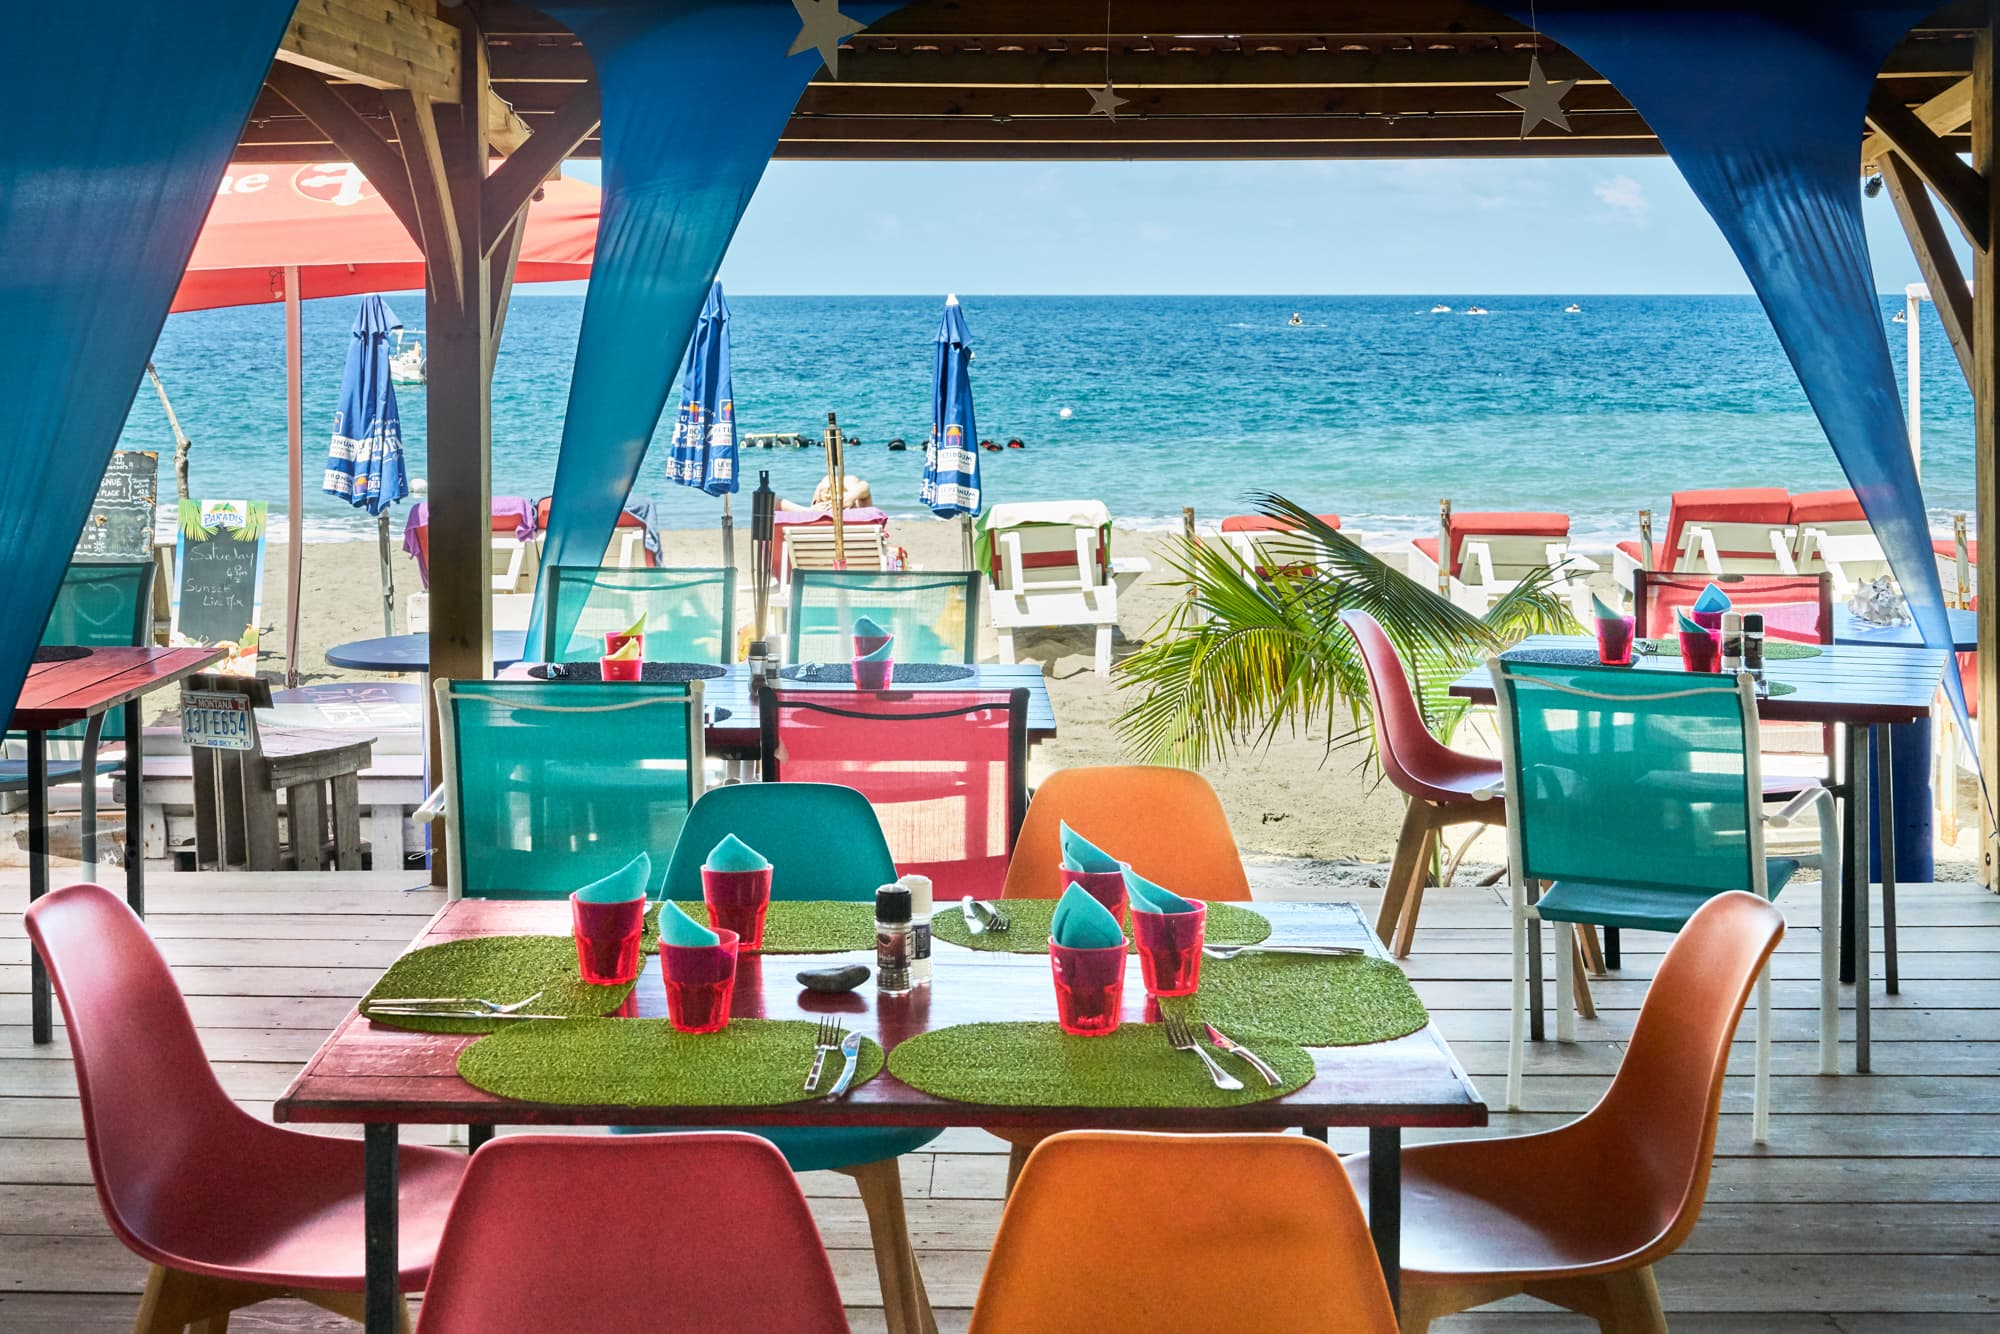 3 Good Reasons Why You Should Make a Break for the Beach Bars in Martinique This Spring